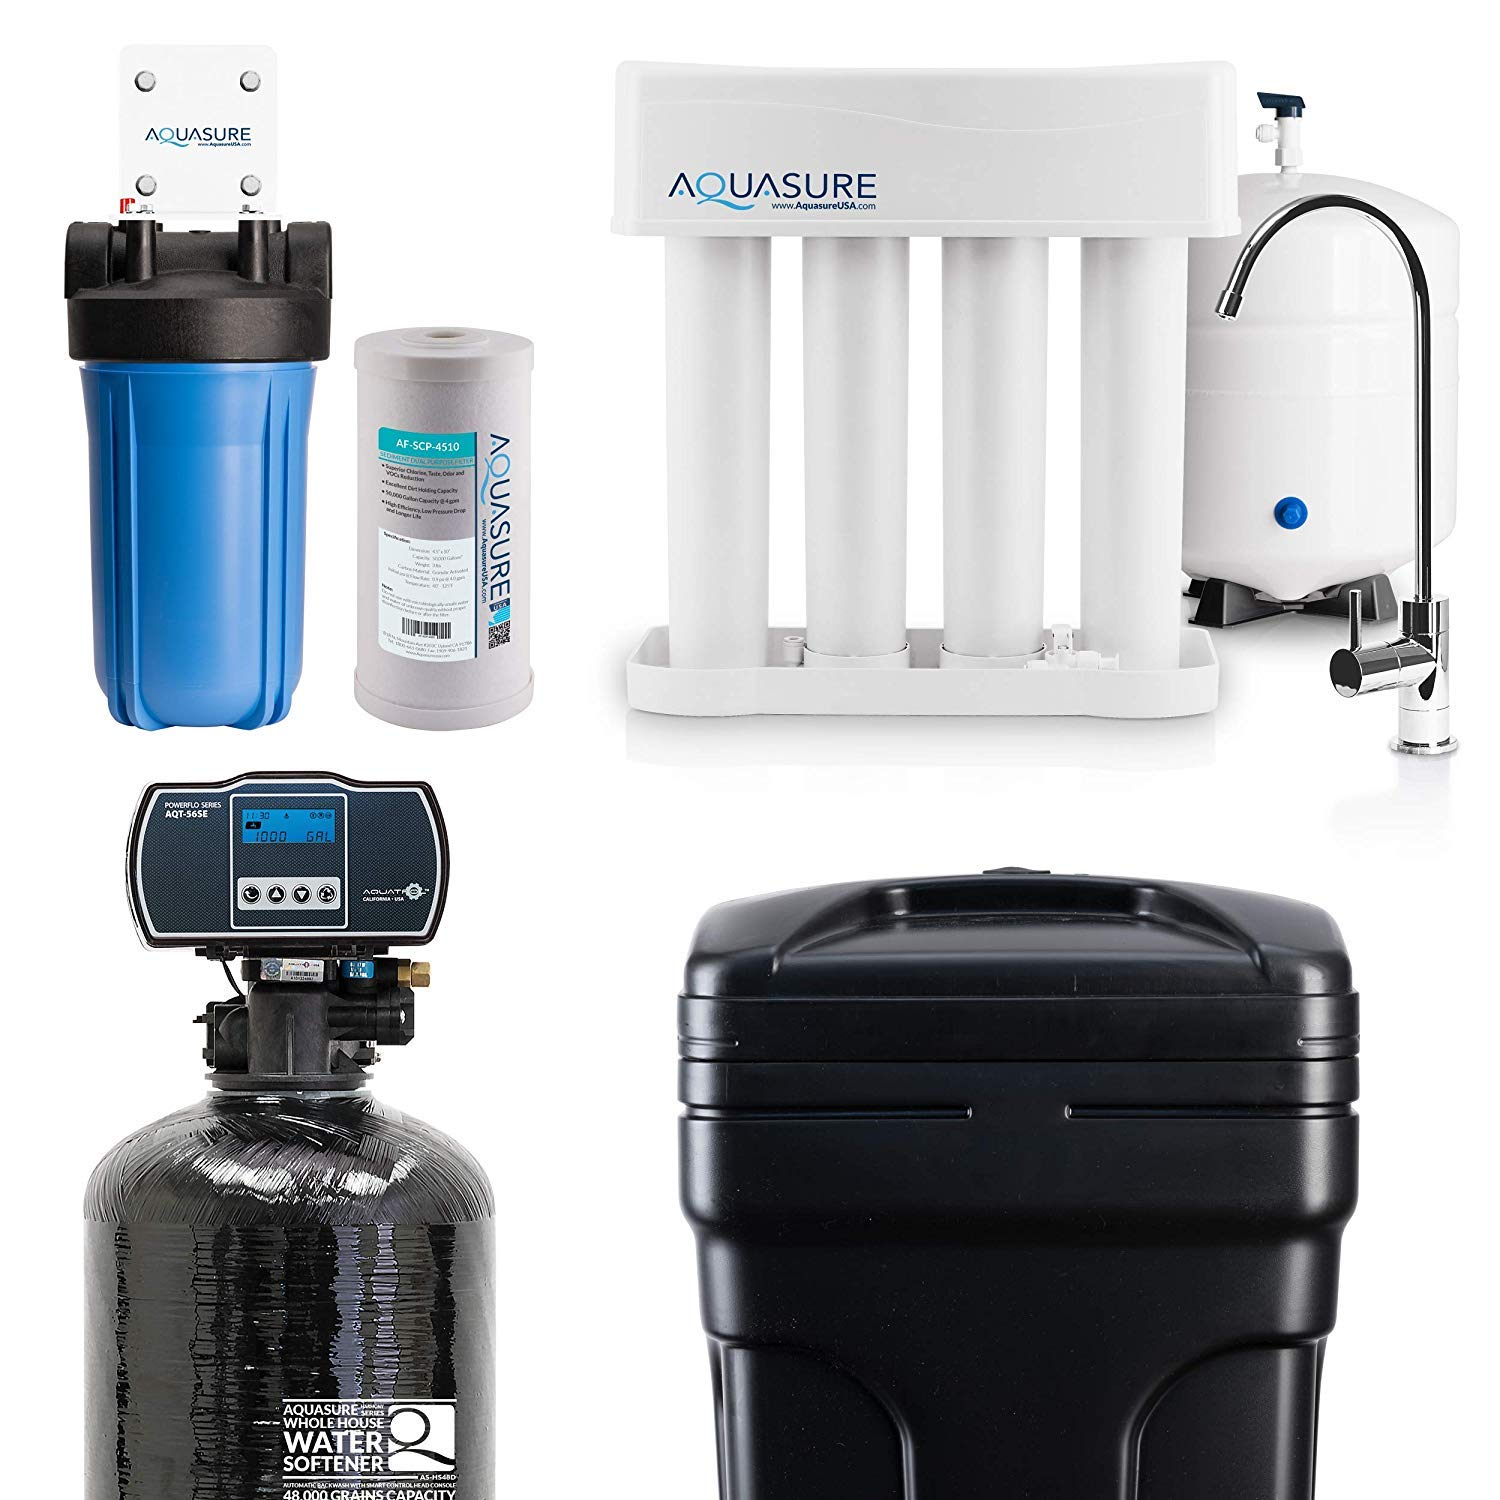 Aquasure Whole House Water Filtration Bundle w/Water Softener - Water Purifier